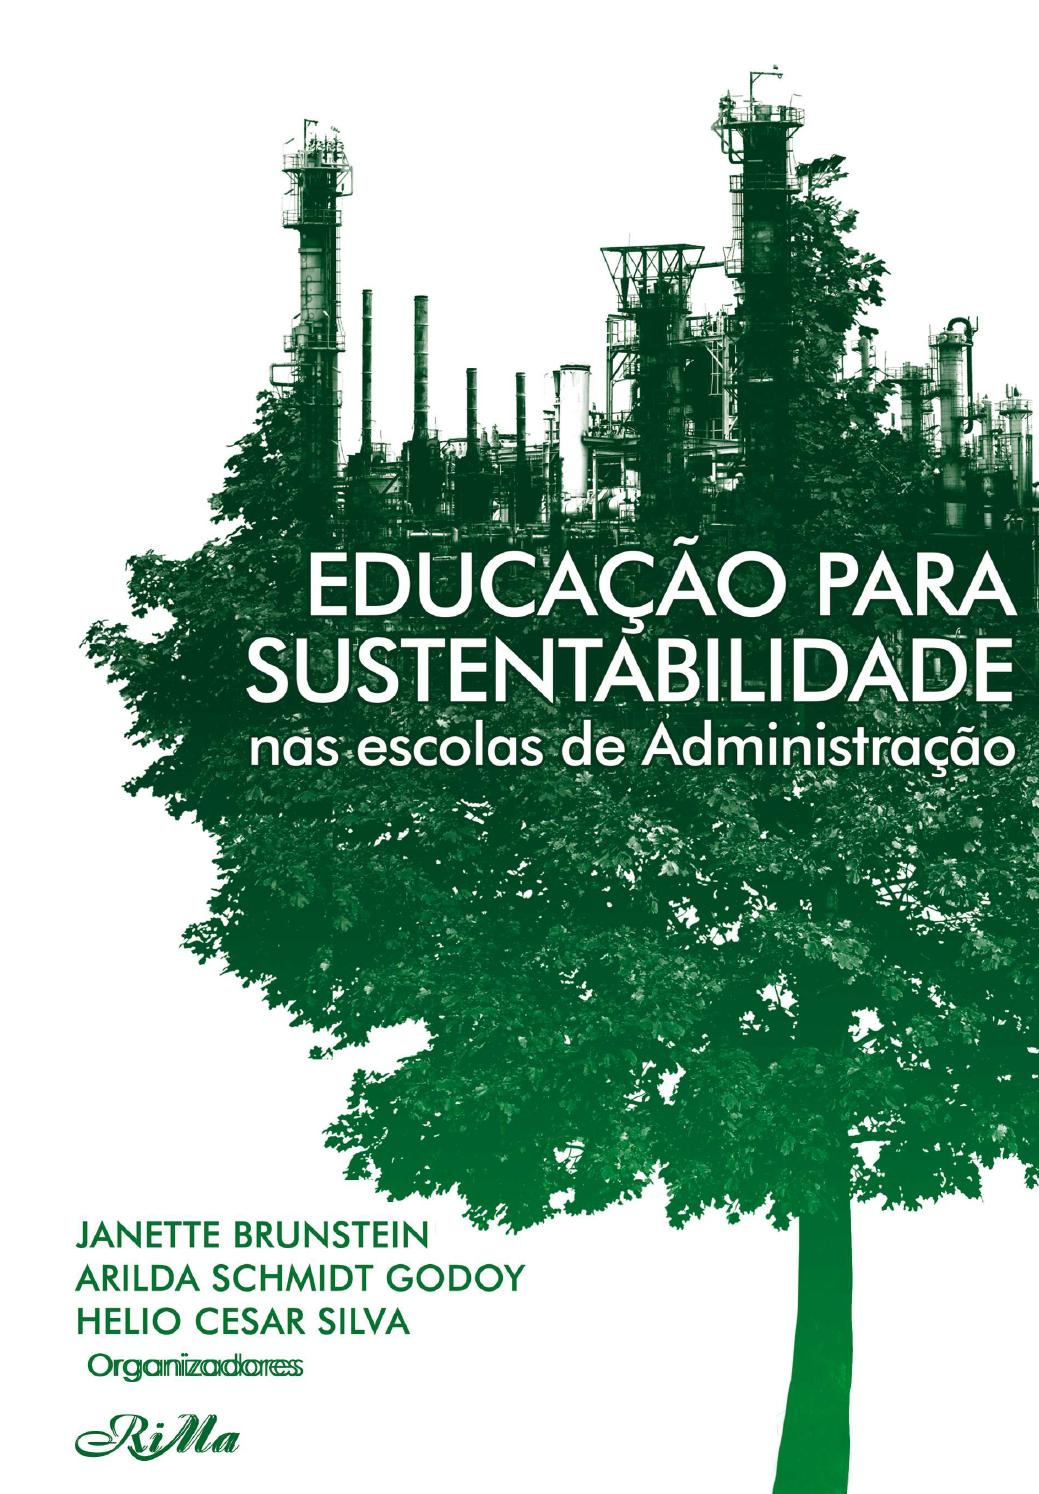 Educao para sustentabilidade by paulo martins issuu fandeluxe Choice Image